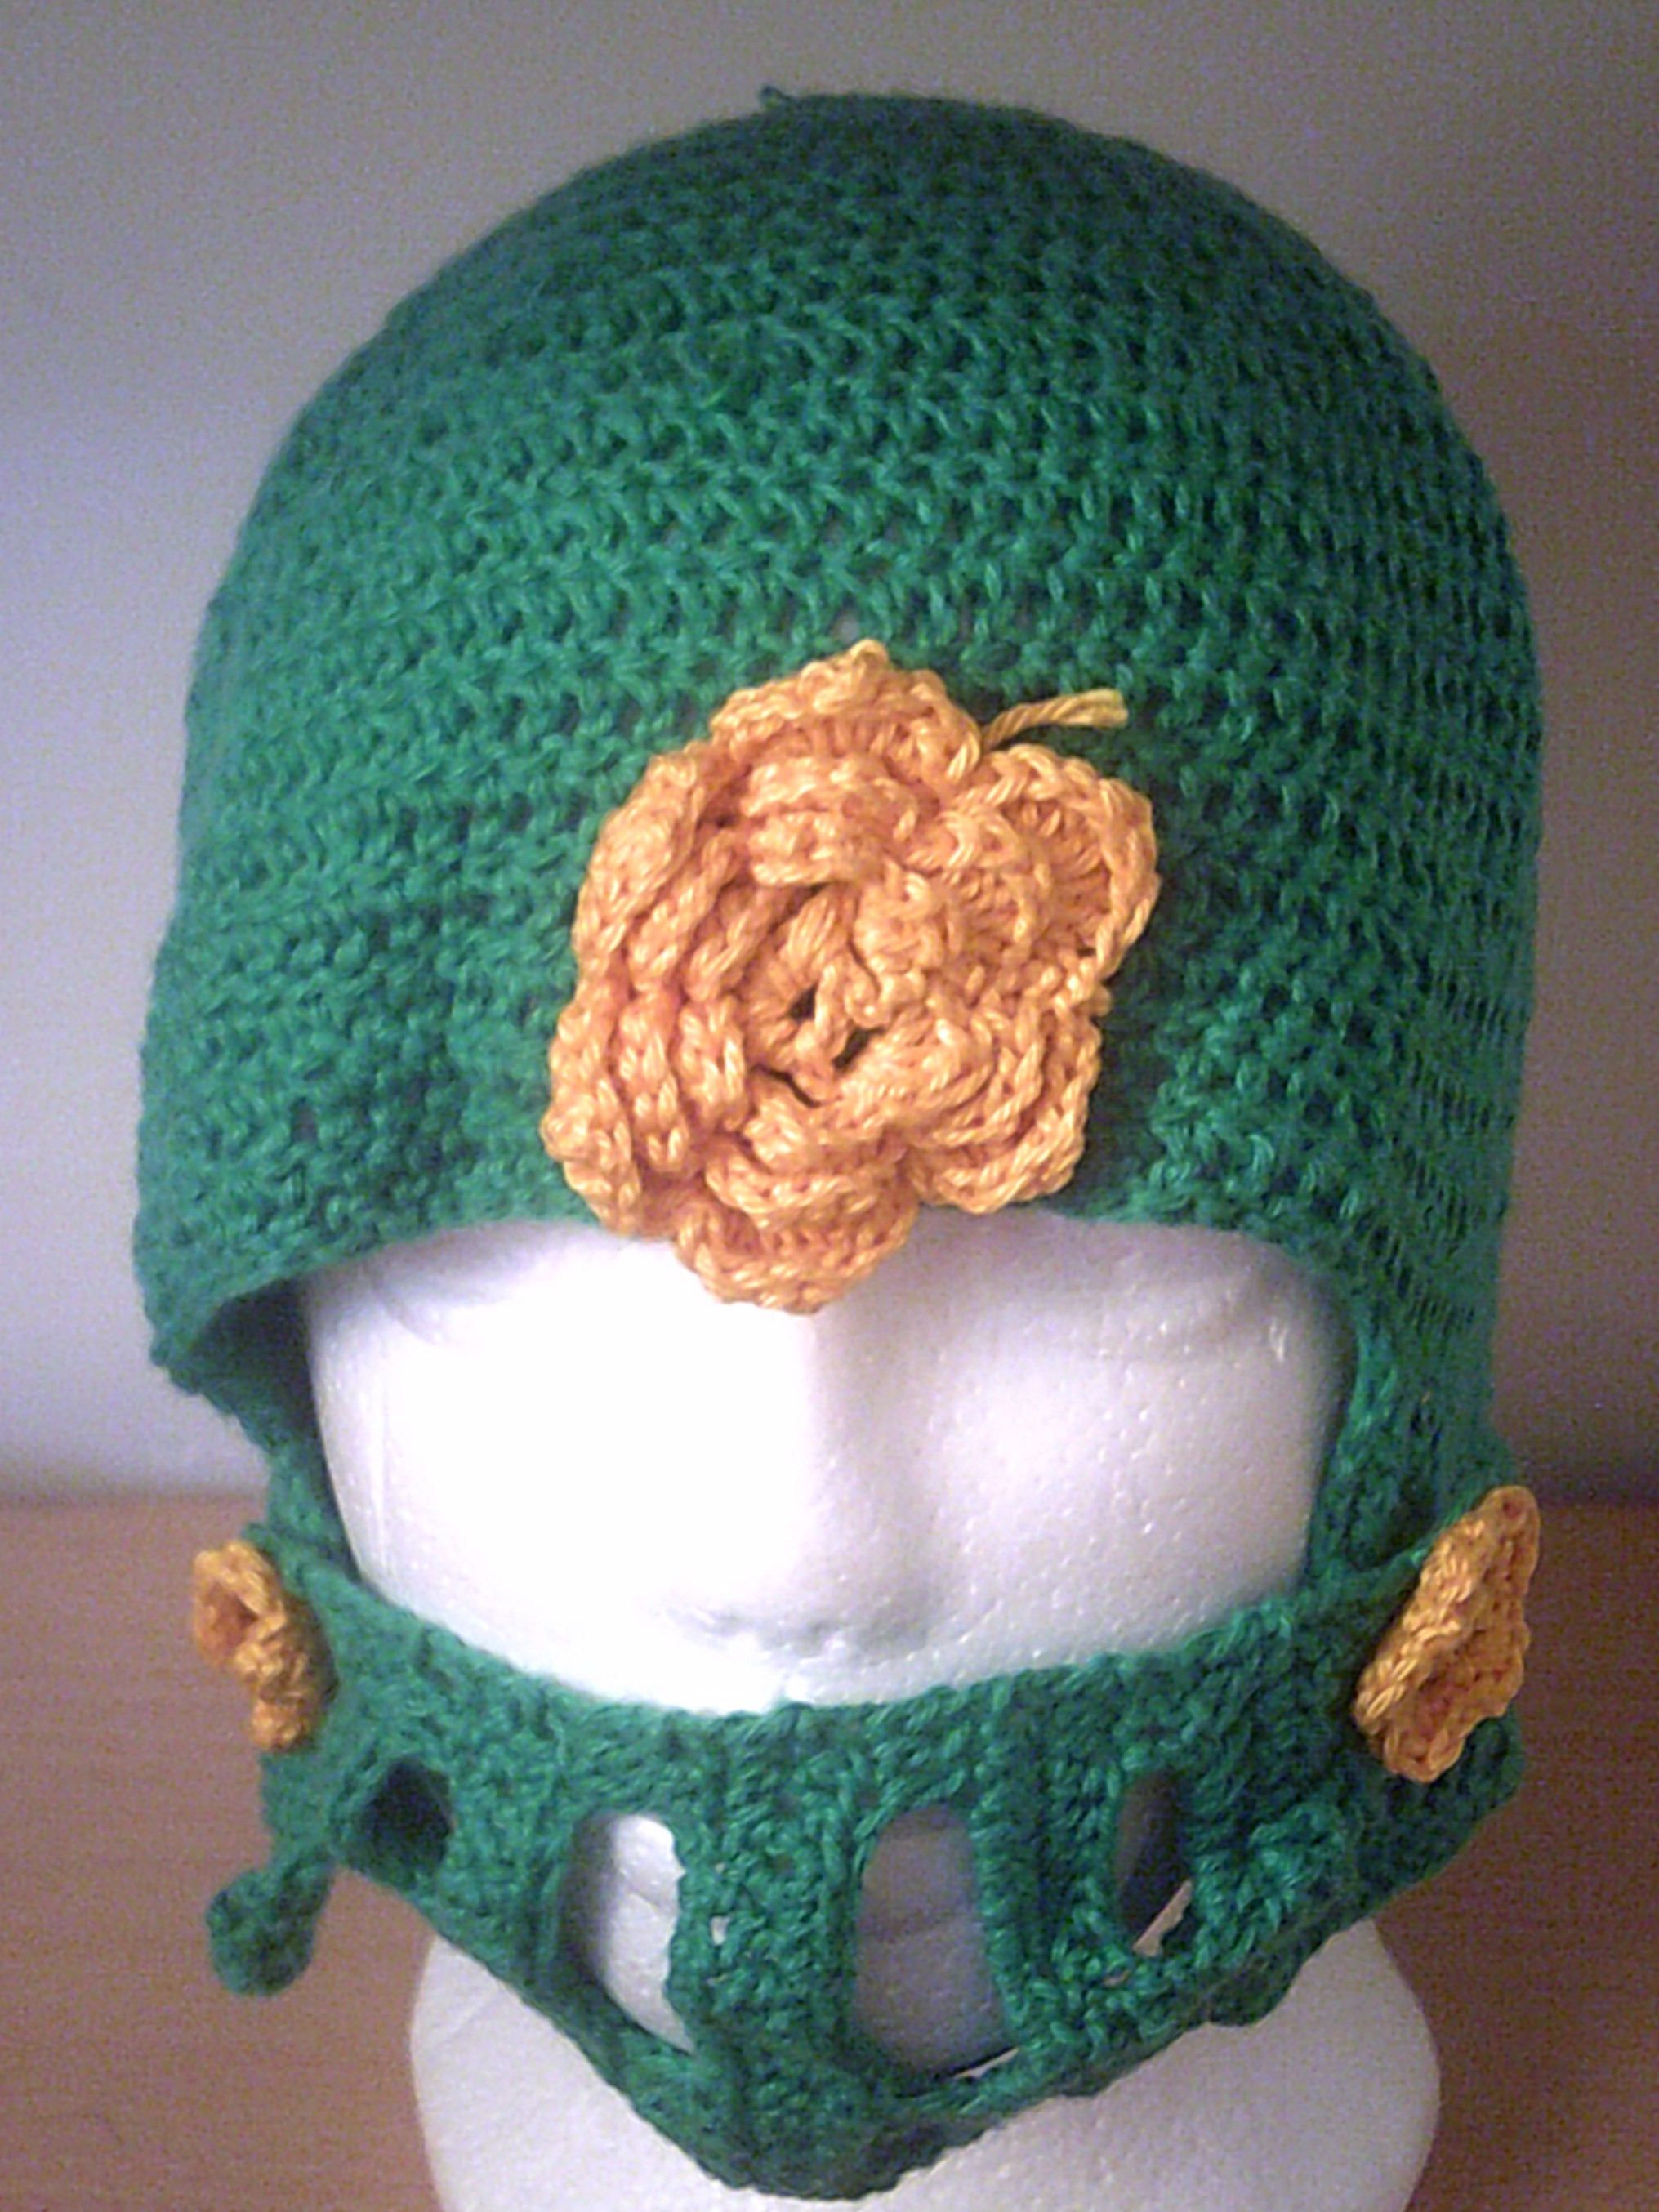 Green knight helmet, decorated with gold flowers, knight hat ...